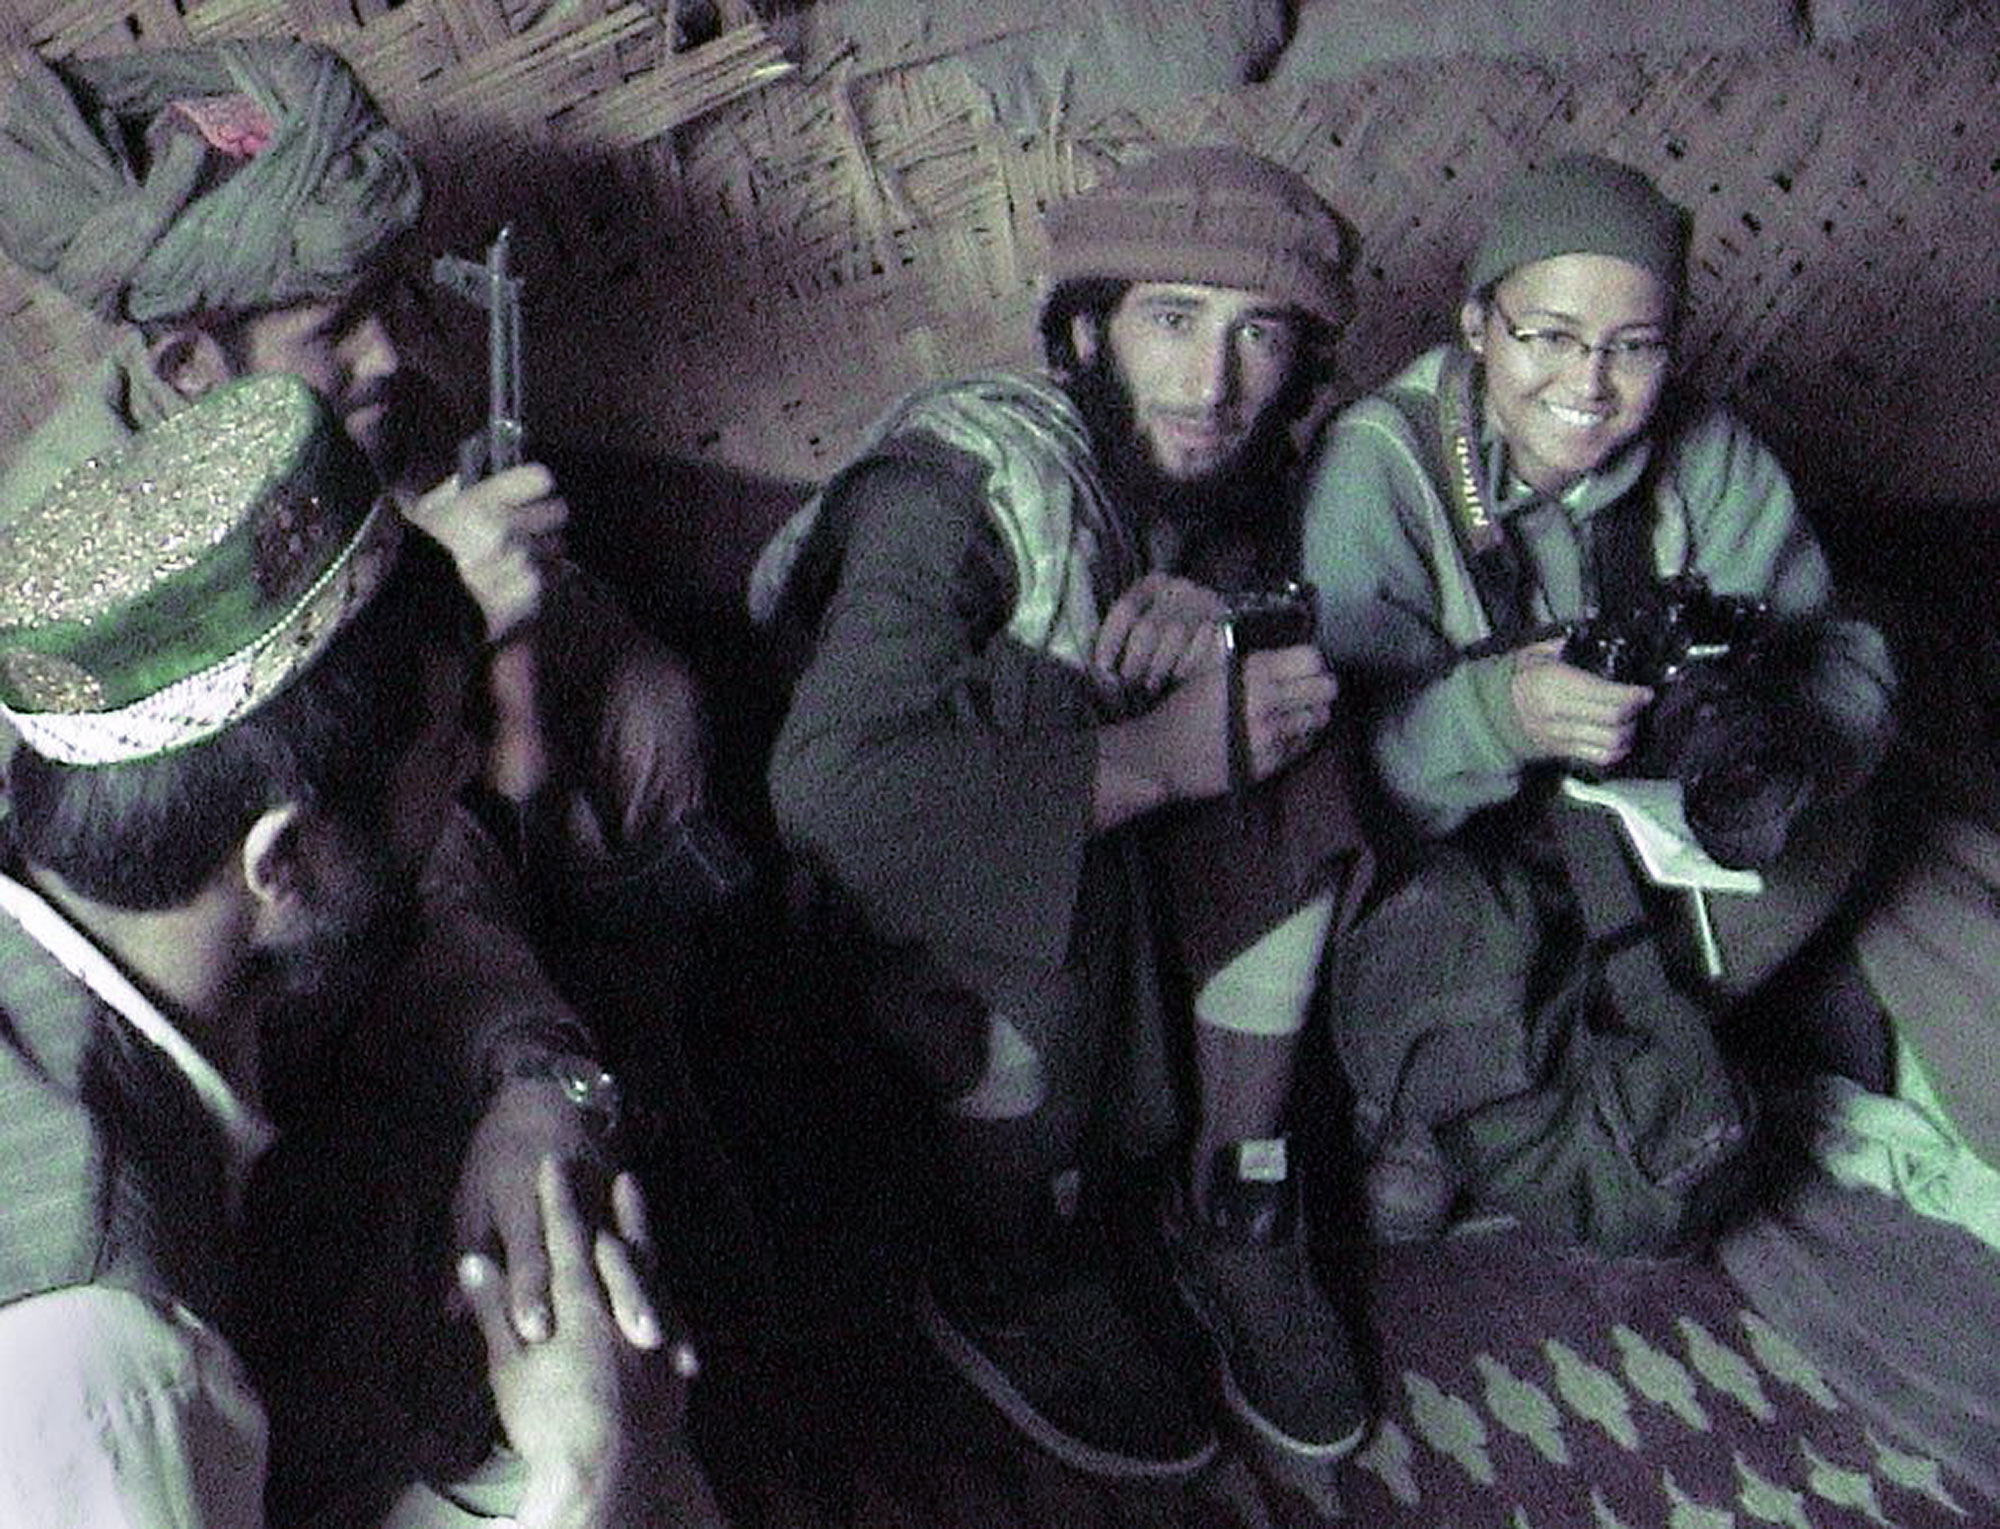 Days before German journalist Volker Handloik was killed in the vicinity of this bunker on the frontlines of Taliban-controlled territory, Cheryl Diaz Meyer is photographed by writer Tracey Eaton working with Northern Alliance soldiers in Puze Pulekhomri, Afghanistan, on Nov. 10, 2003.